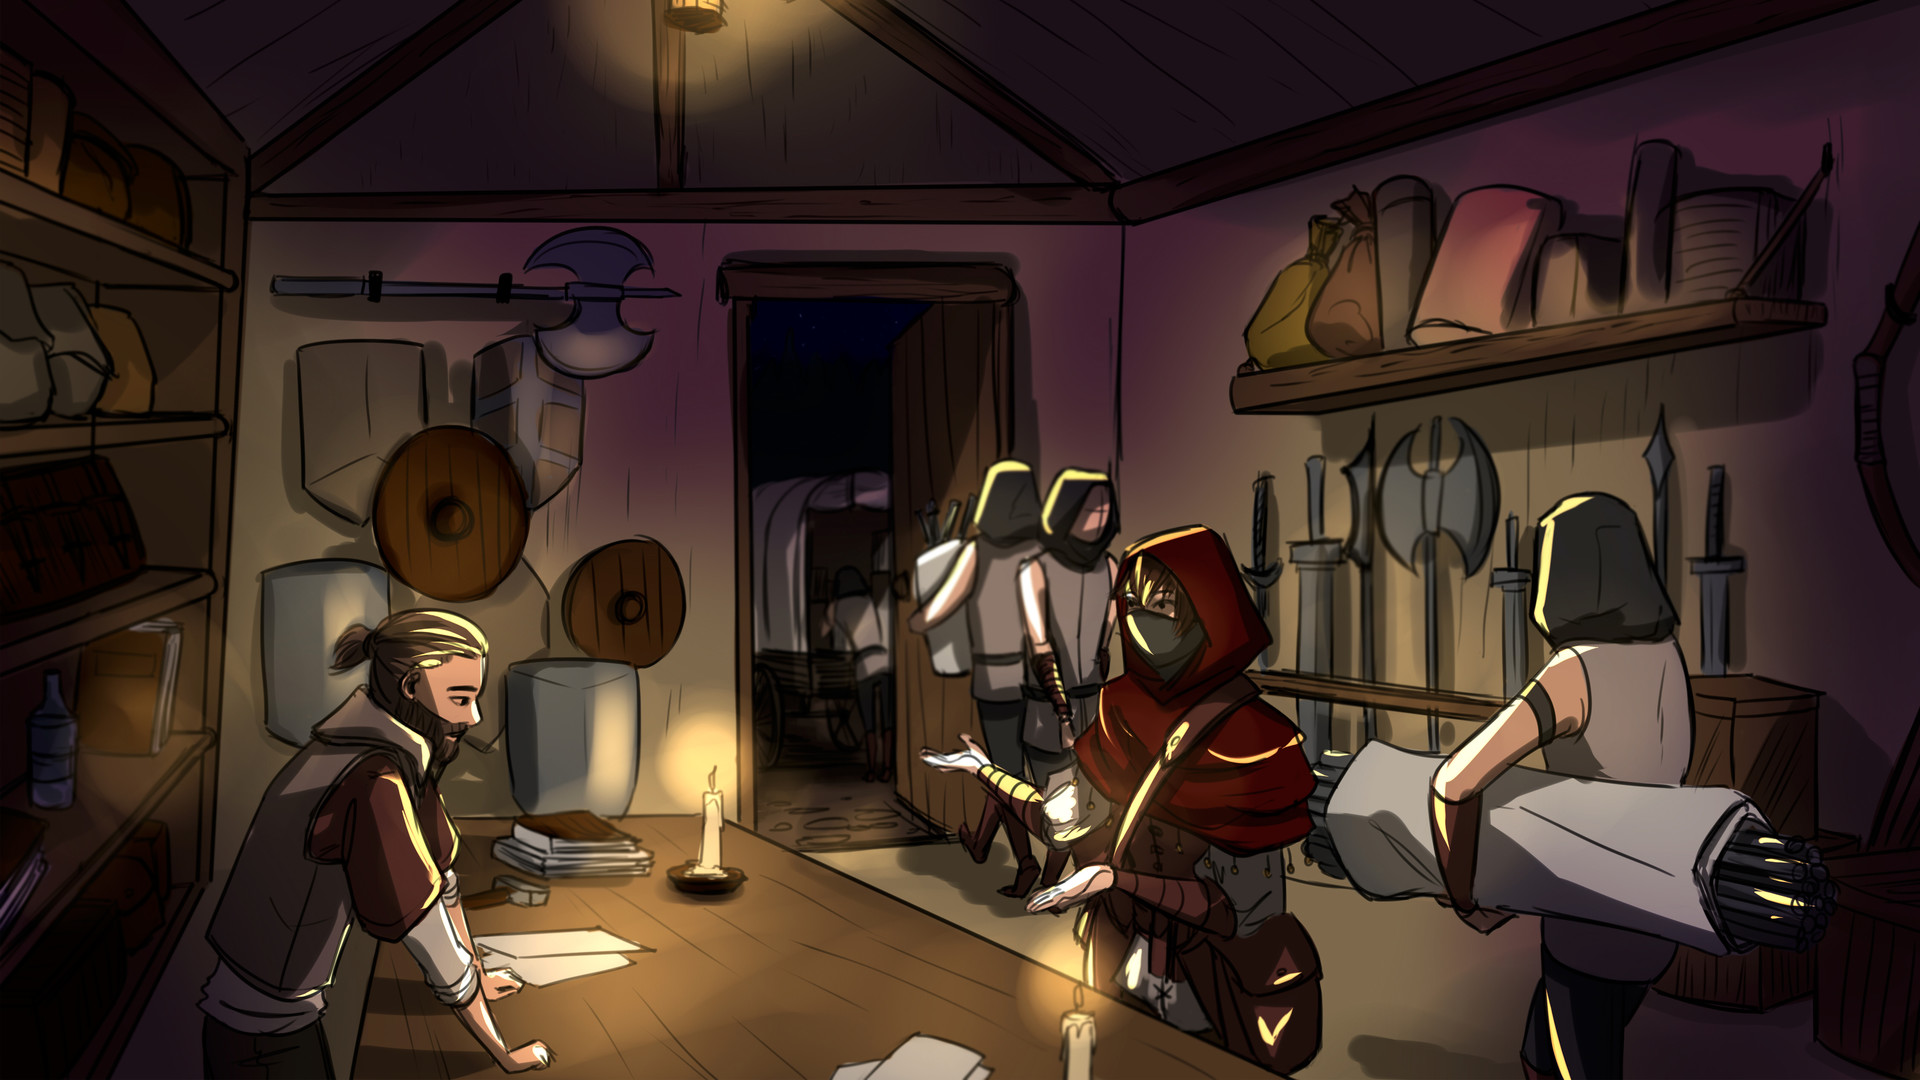 The merchant is getting ready for a job, his workers loading up the caravan with weapons